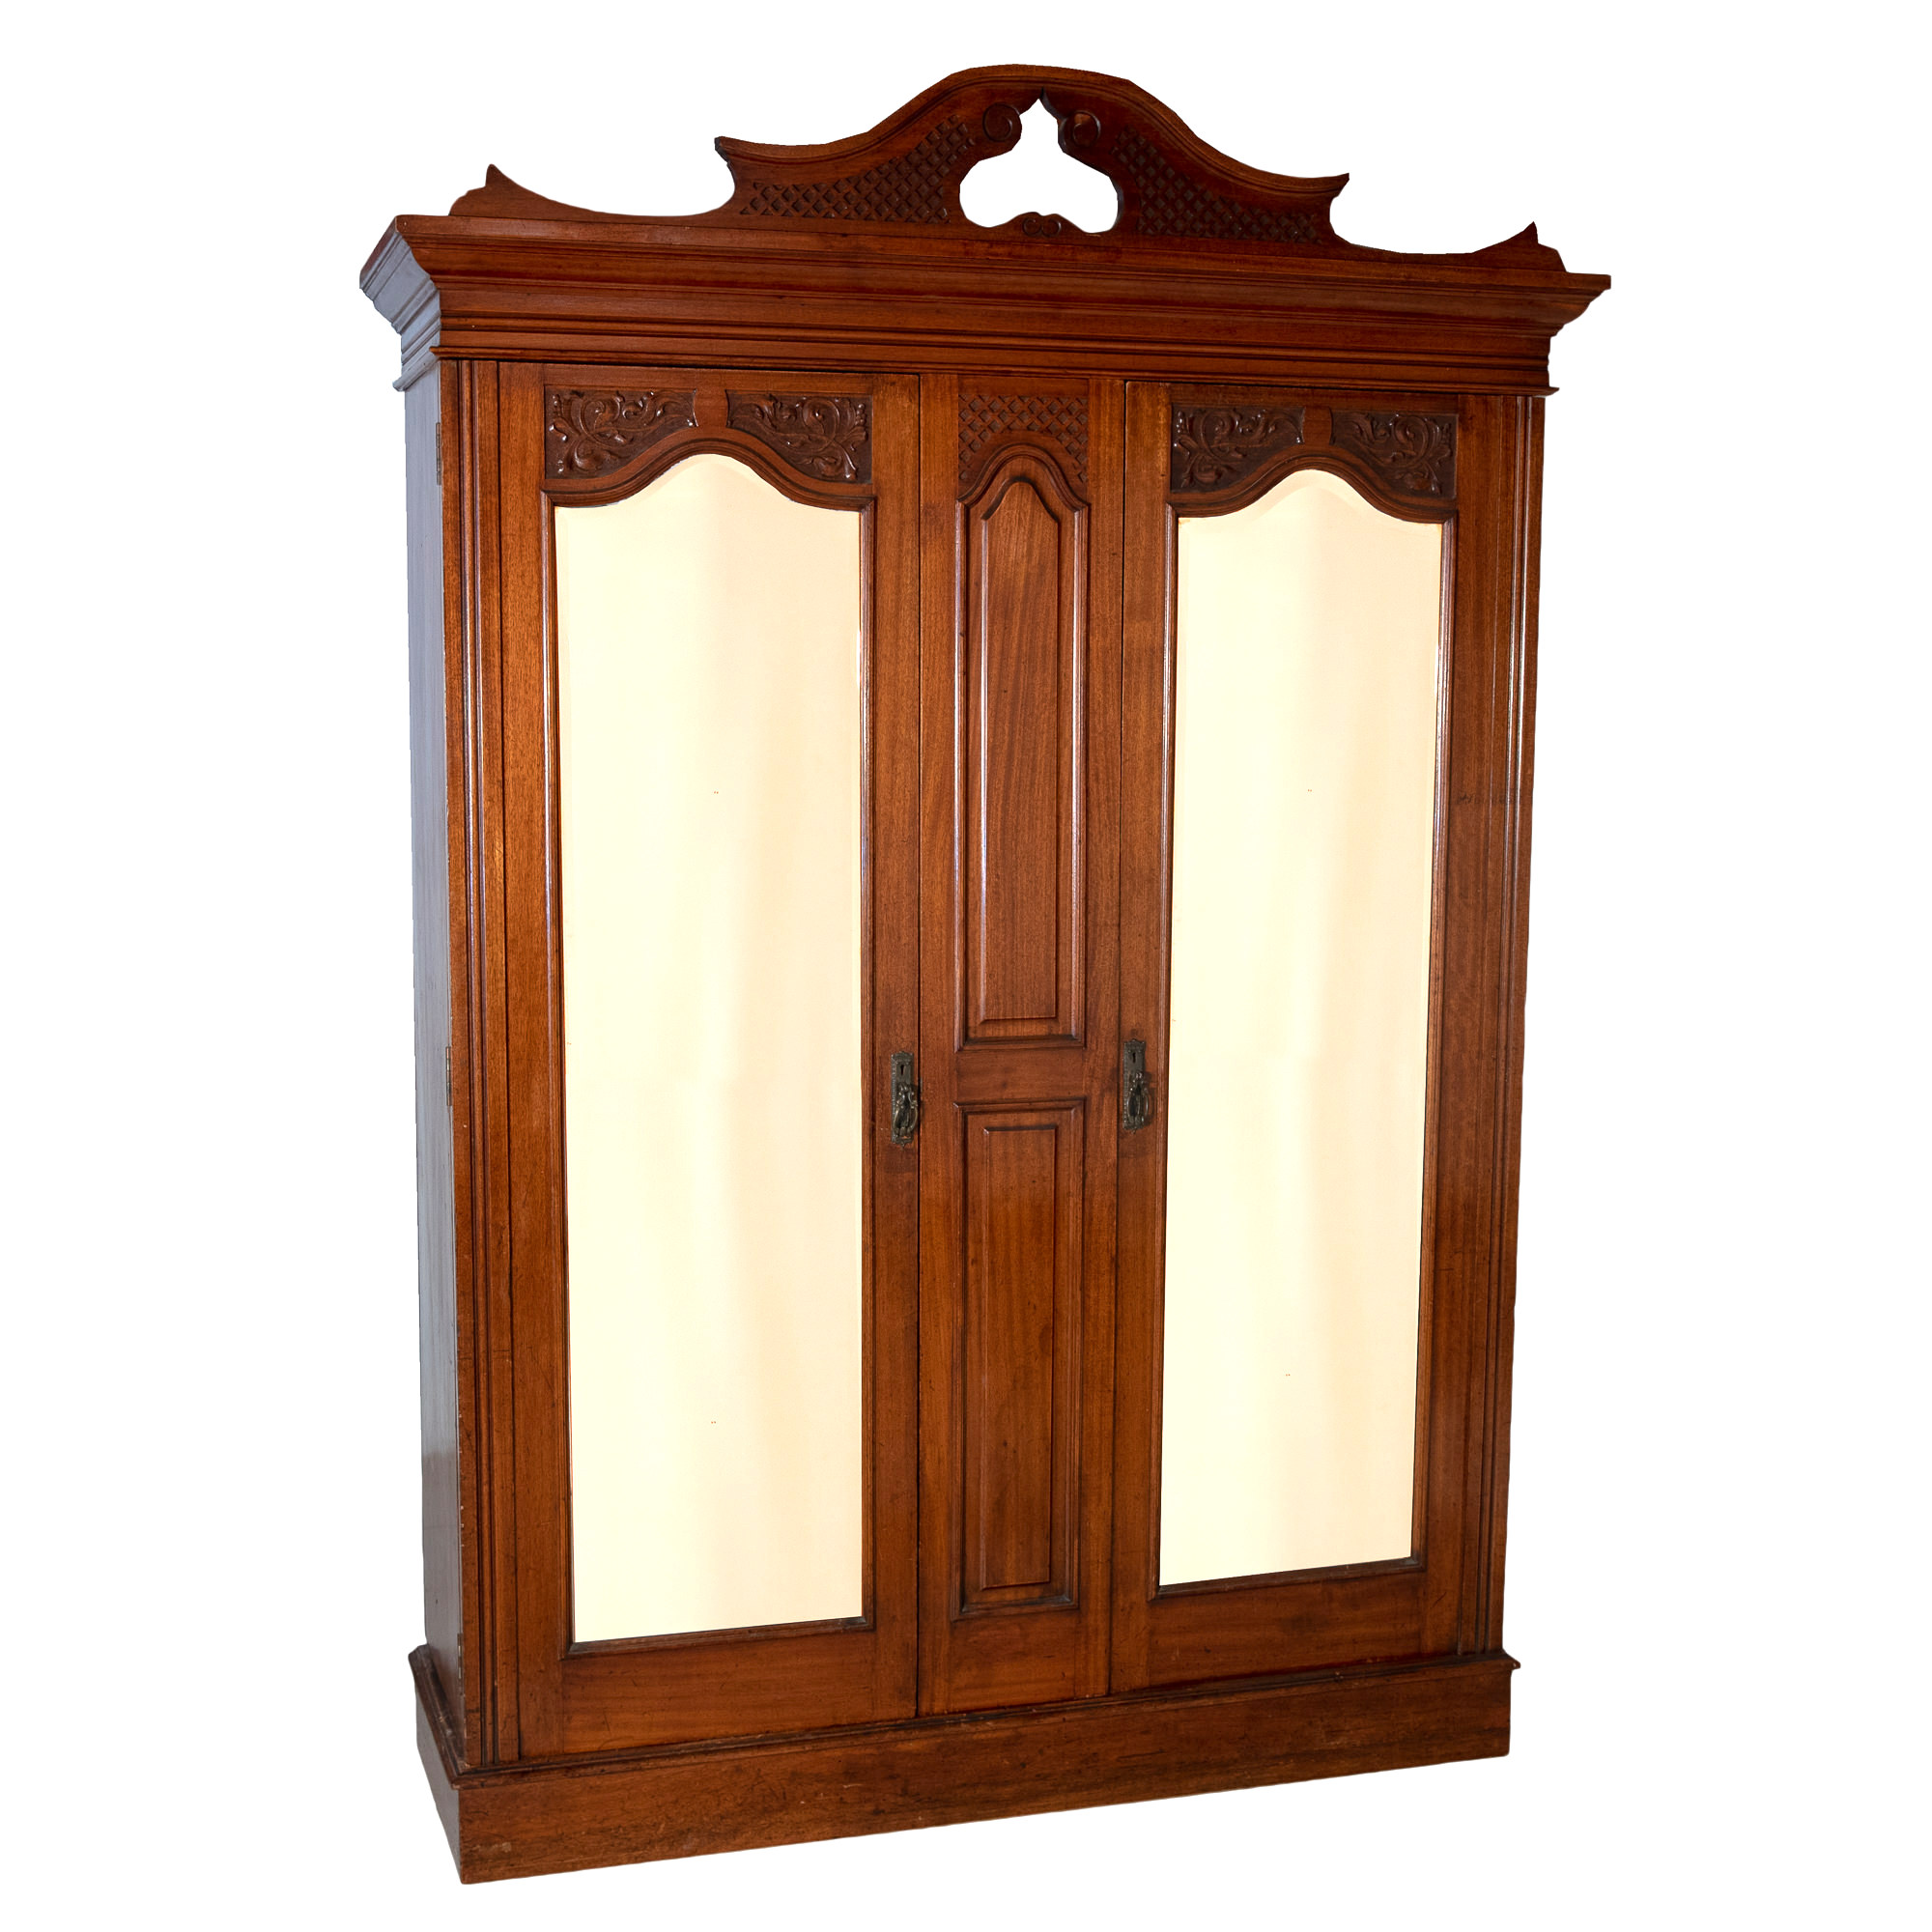 'Anthony Hordern and Sons Queensland Maple Wardrobe Early 20th Century'